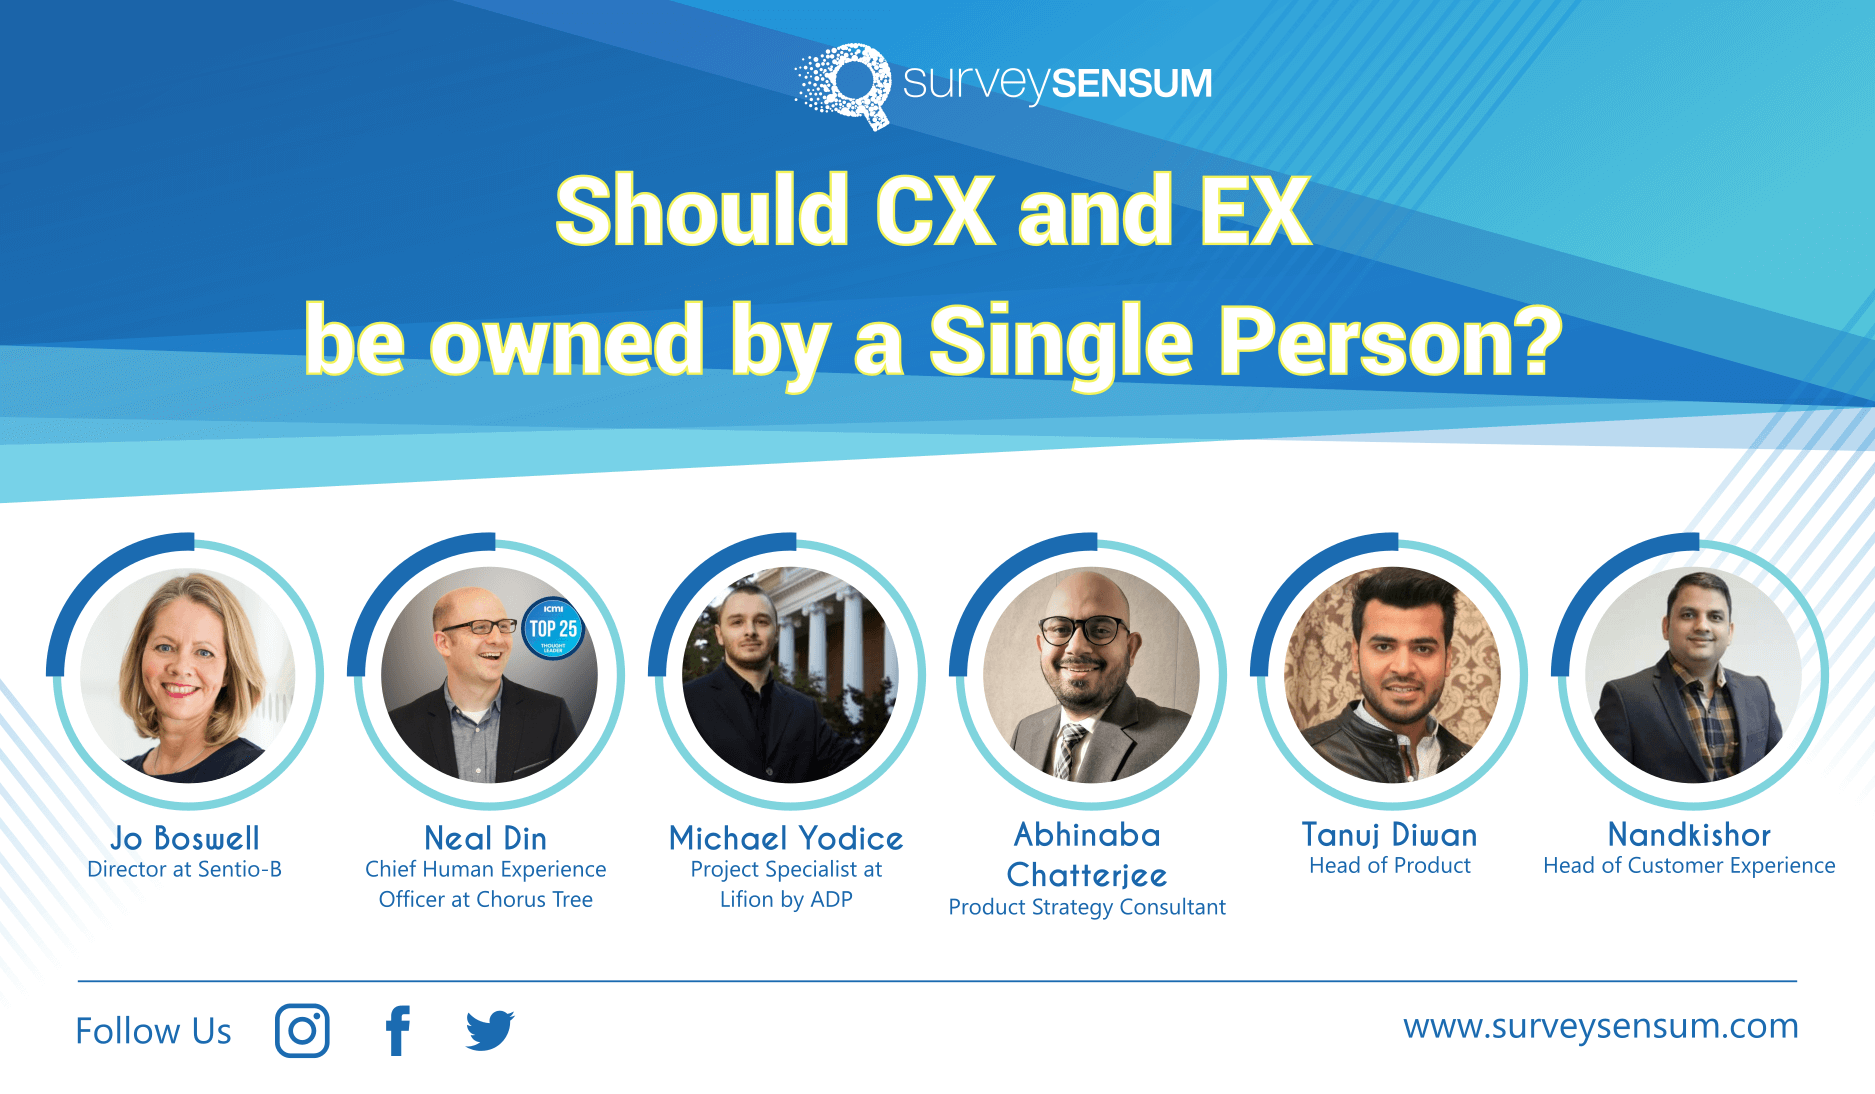 Chapter 8: Should CX and EX be owned by a single person?